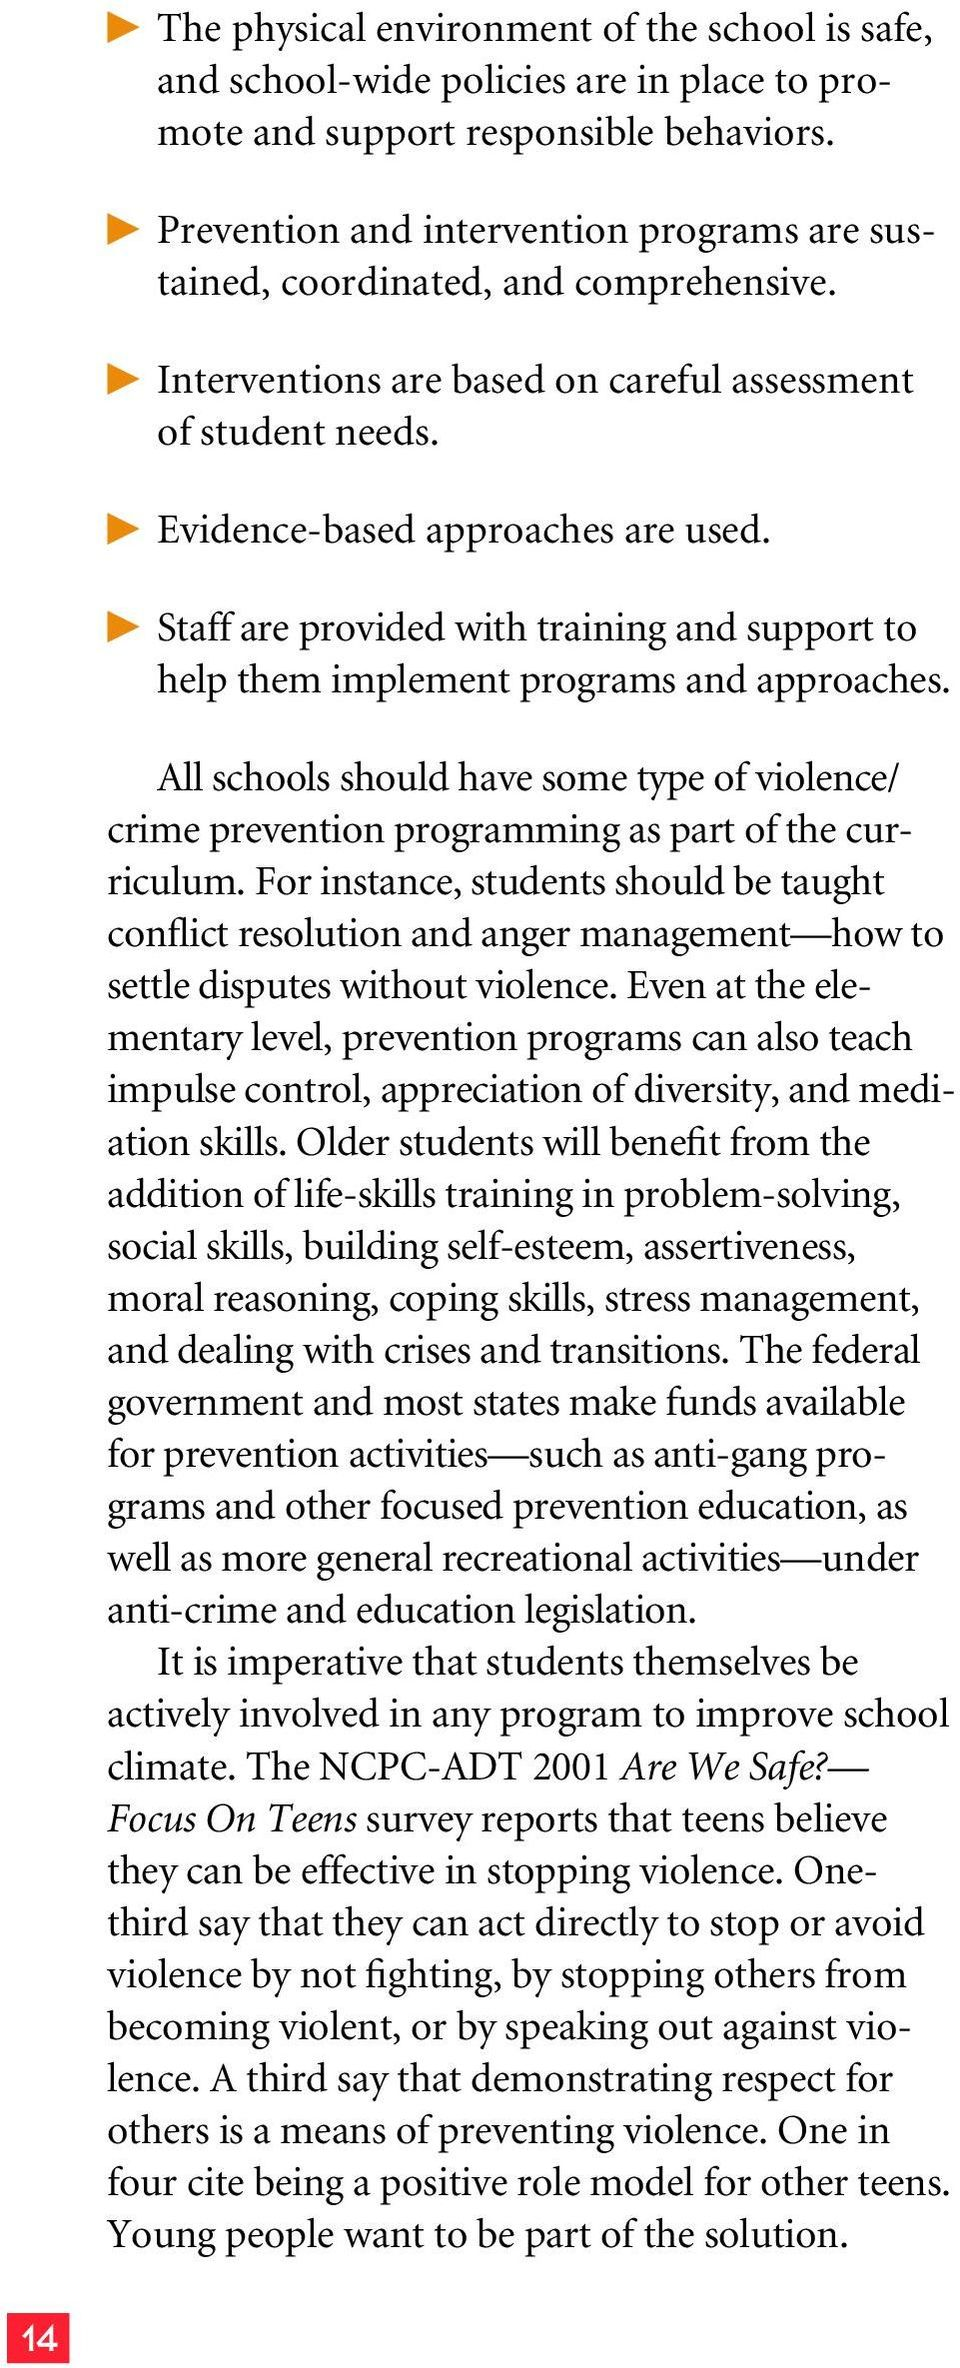 Staff are provided with training and support to help them implement programs and approaches. All schools should have some type of violence/ crime prevention programming as part of the curriculum.